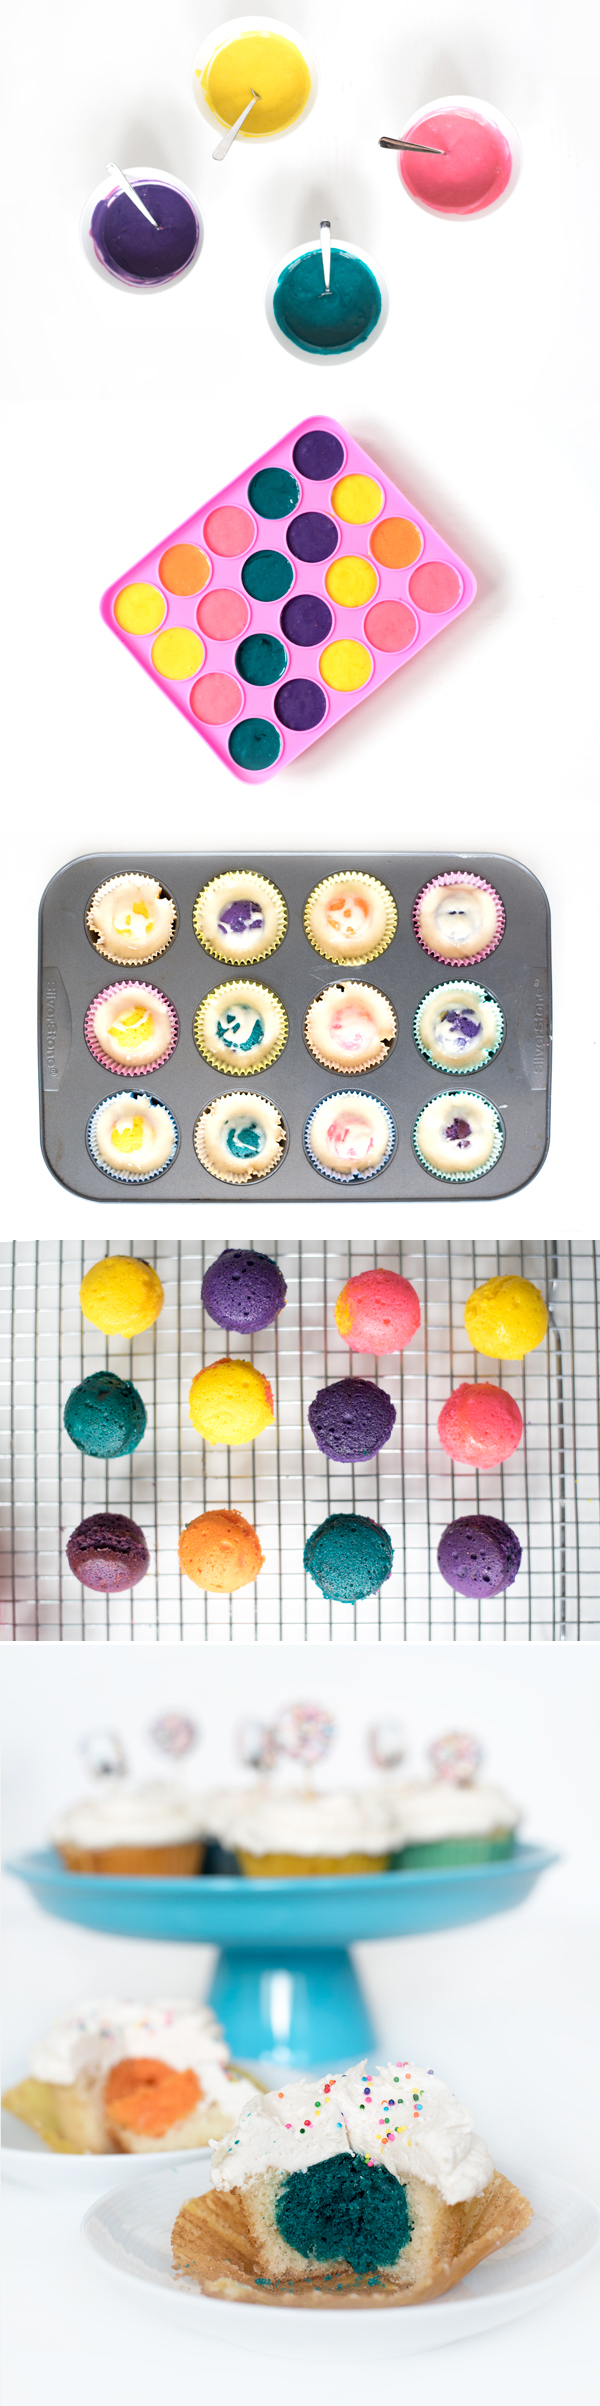 Stuffed Vanilla Cupcakes with a Colorful Surprise! The secret? A Cake pop baked inside!